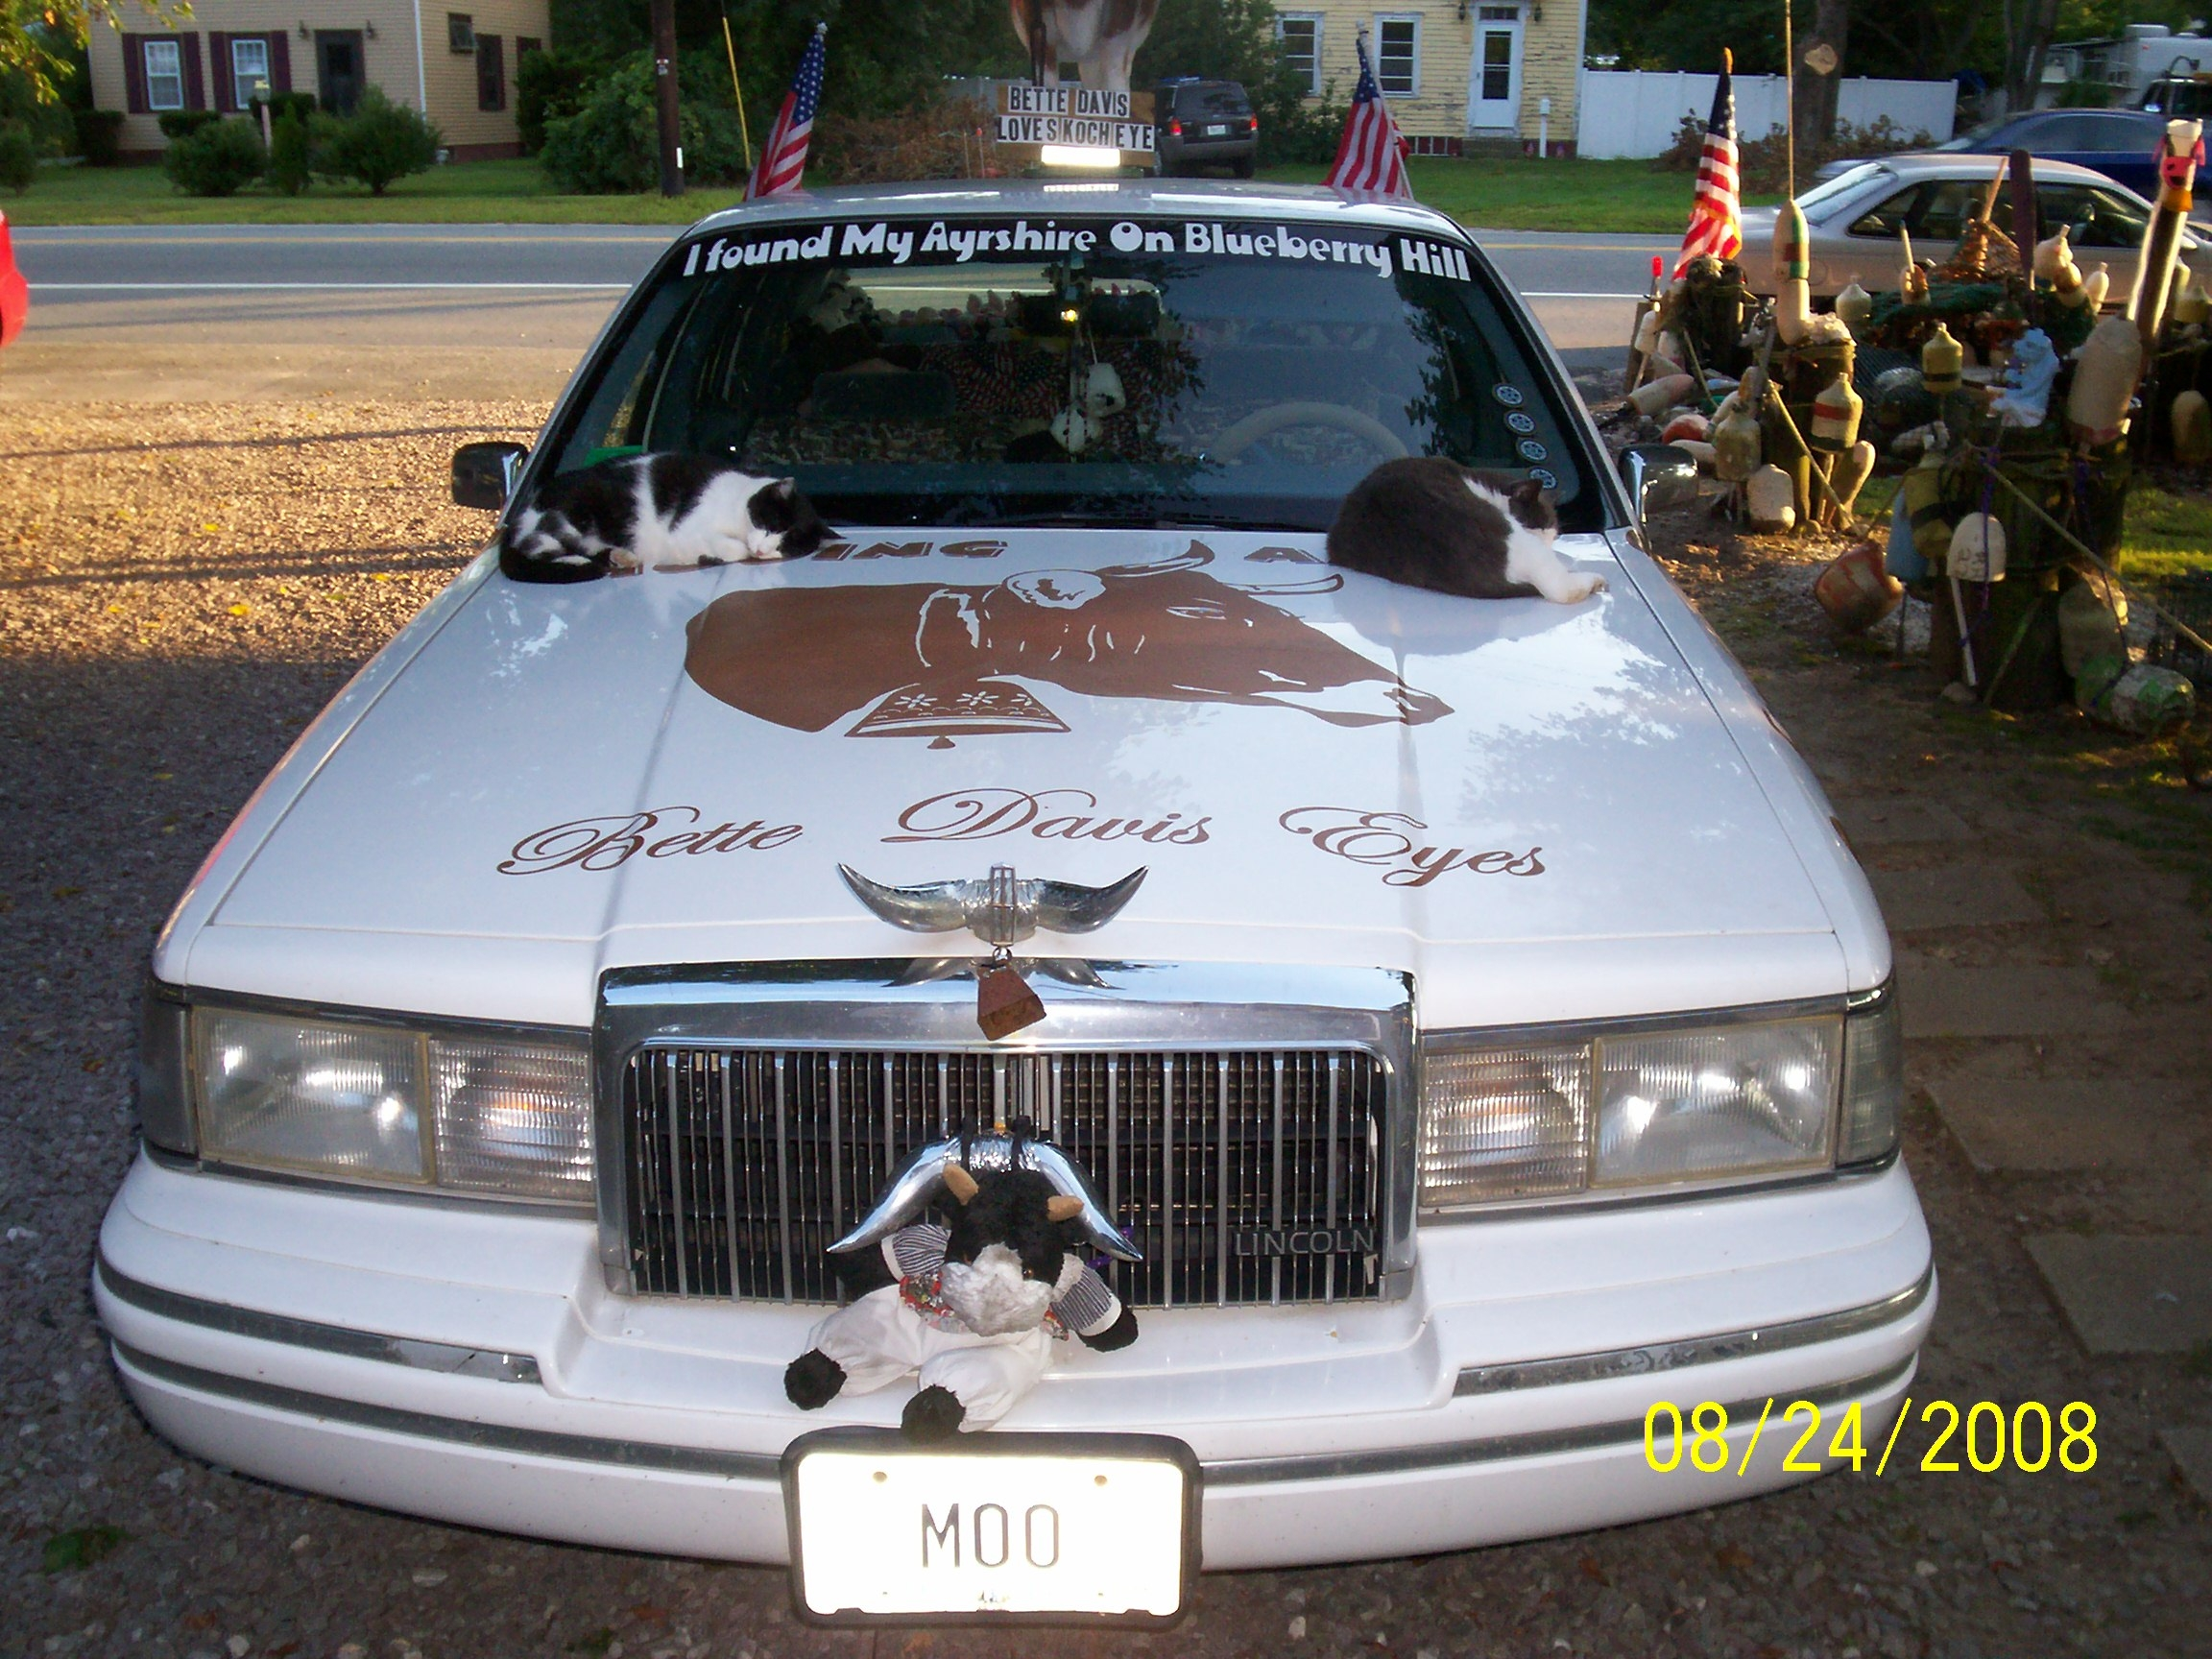 Cowcar/Carphoto11.JPG